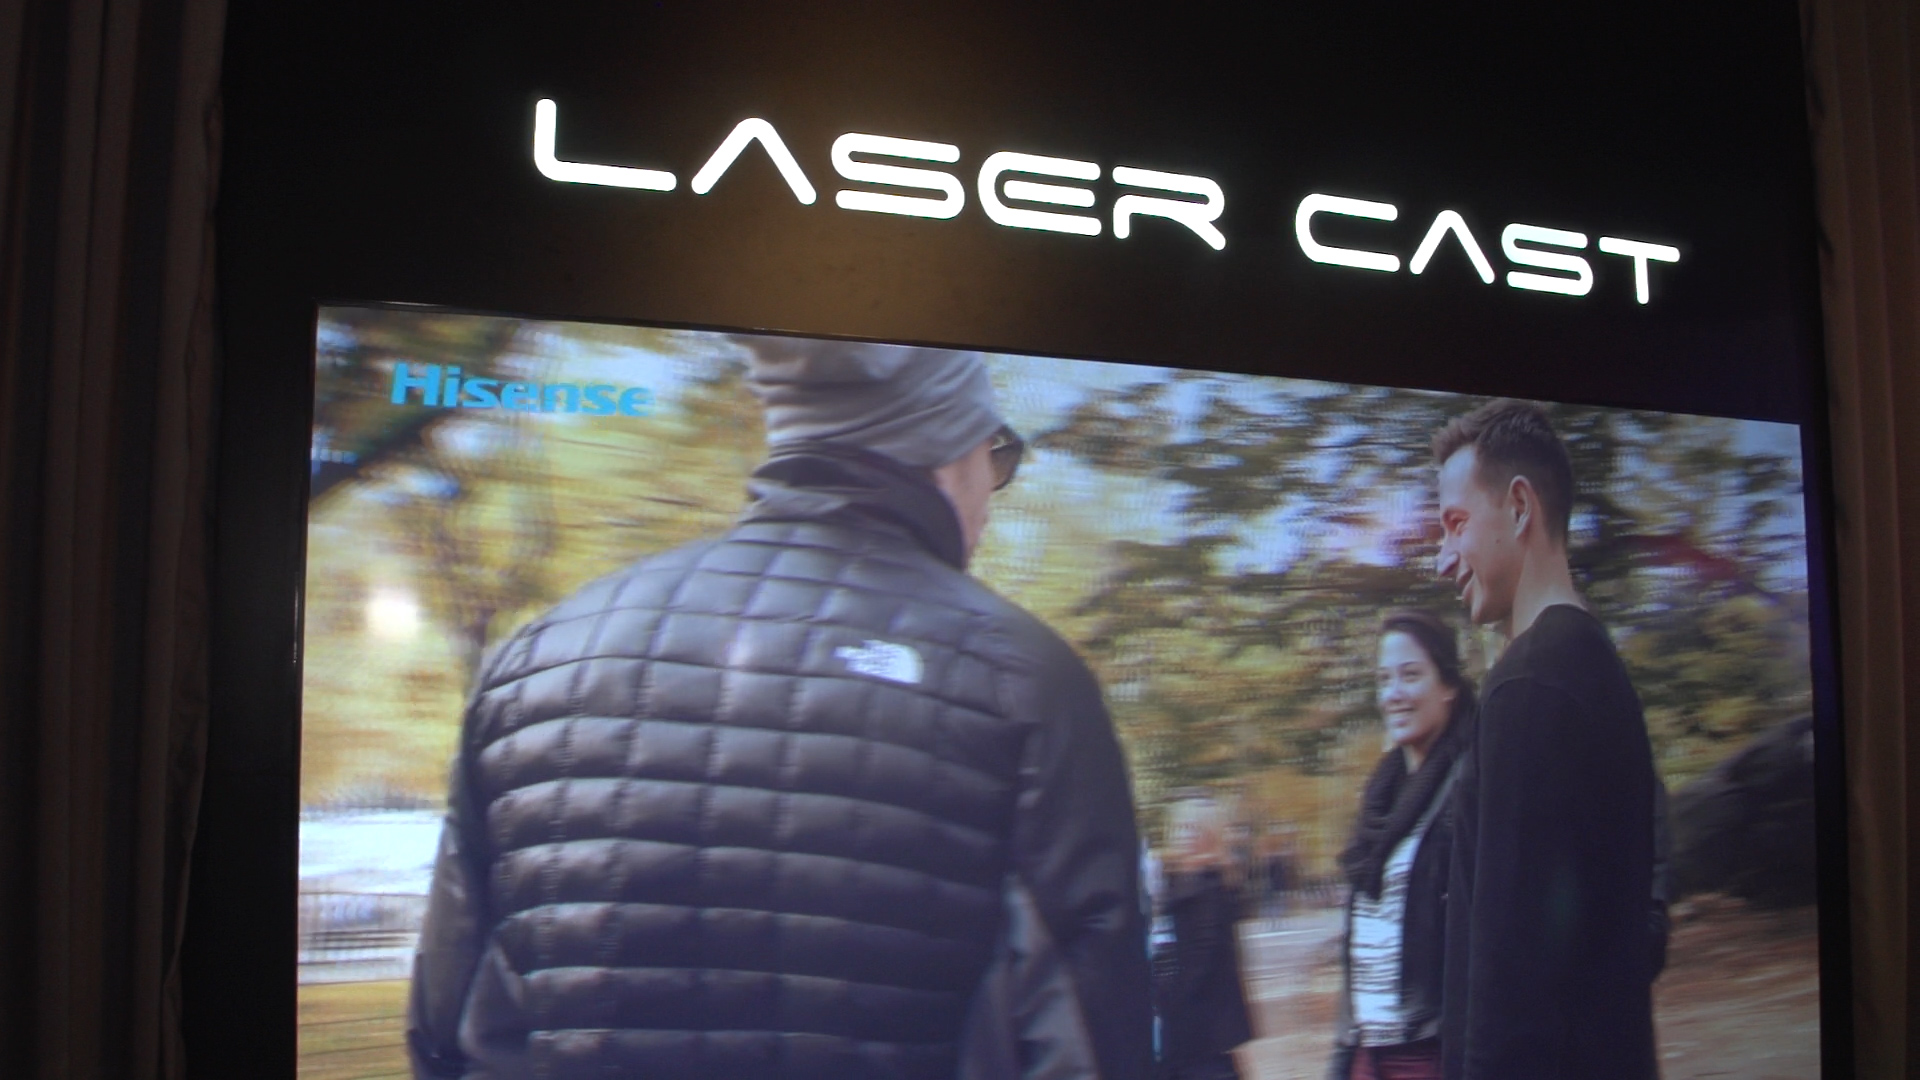 Video: Hisense LaserCast is a 100-inch projection-based TV